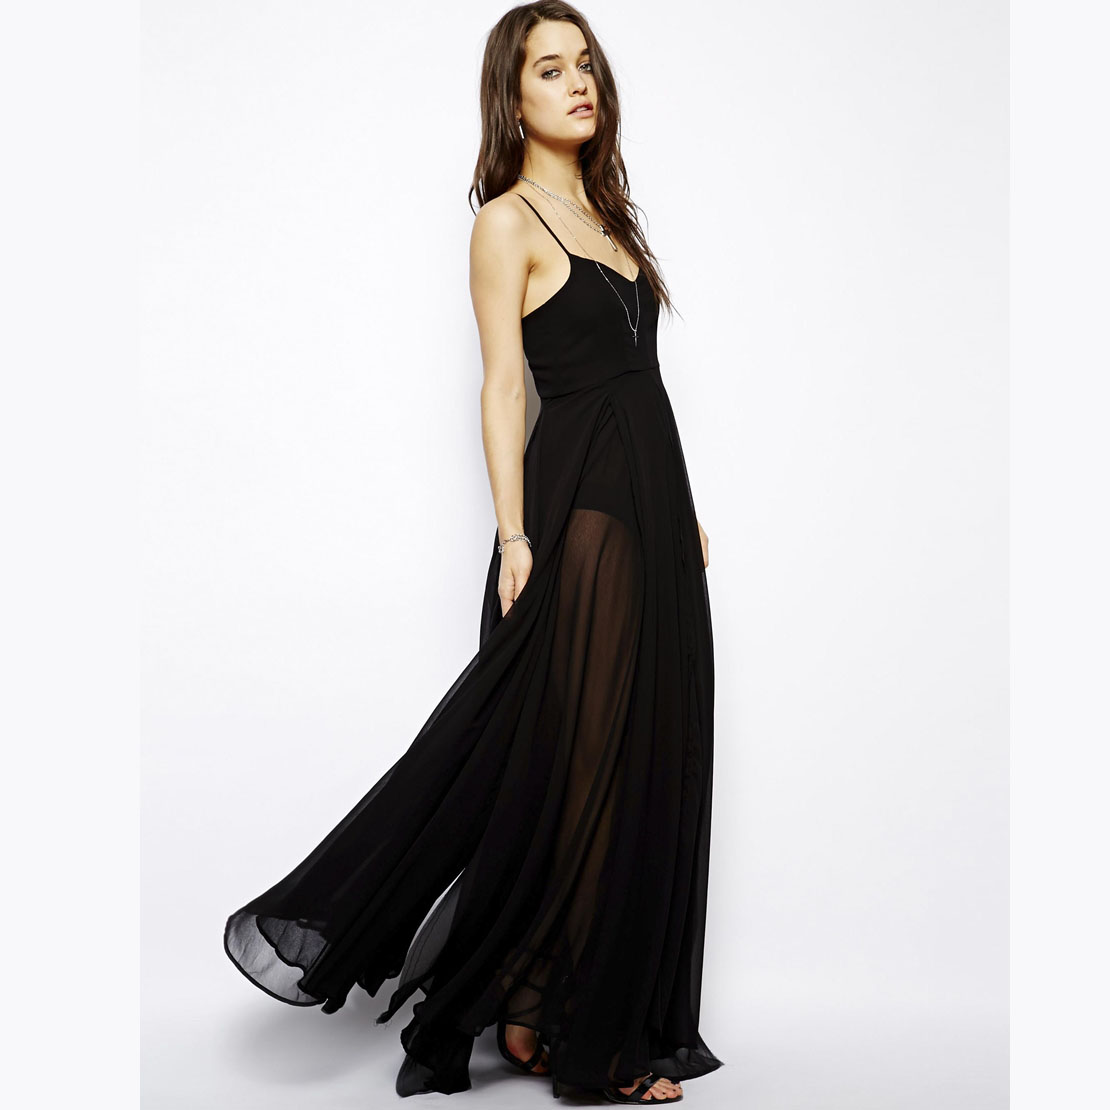 Wide skirt lined with black suspenders perspective has long paragraph and to dress dress skirt haoduoyi